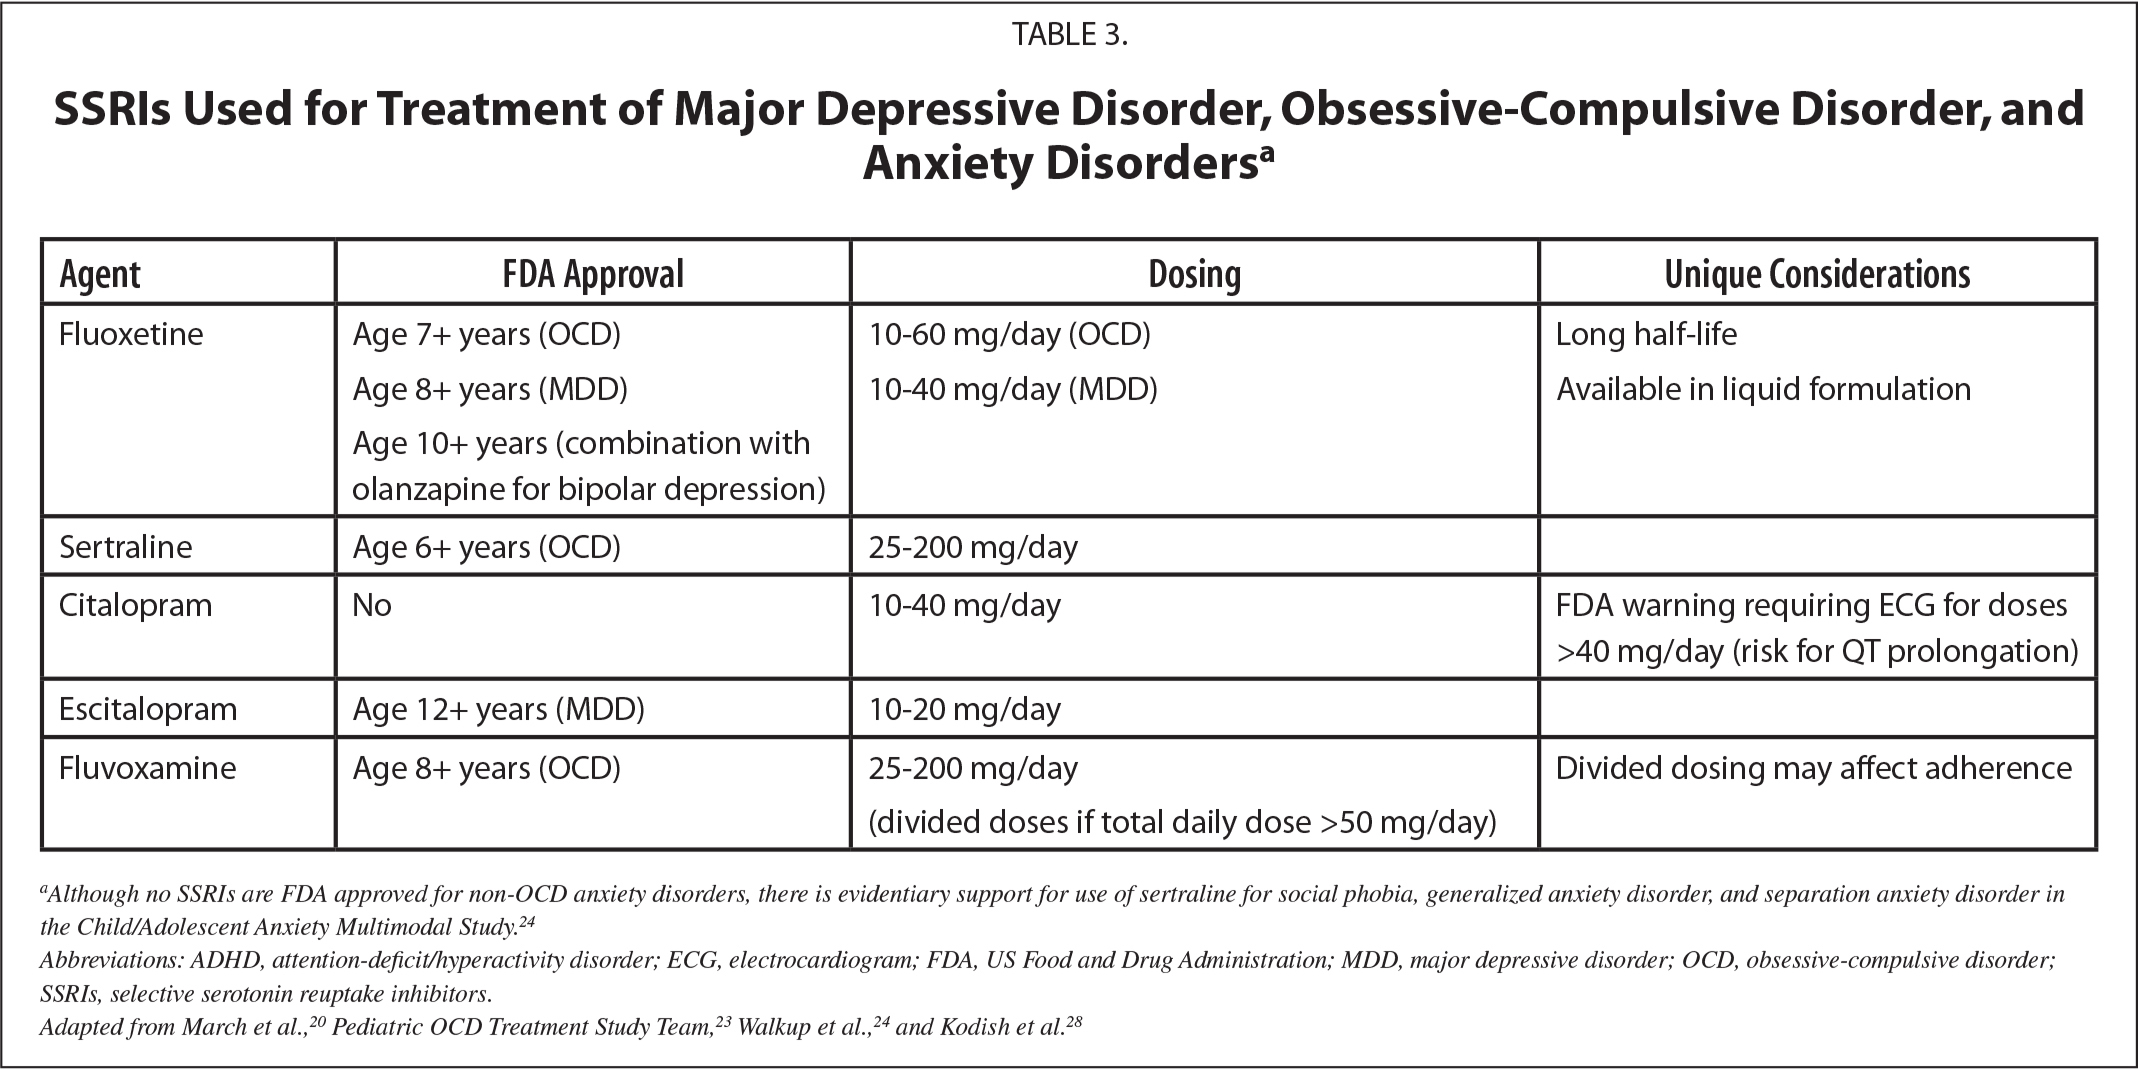 SSRIs Used for Treatment of Major Depressive Disorder, Obsessive-Compulsive Disorder, and Anxiety Disordersa